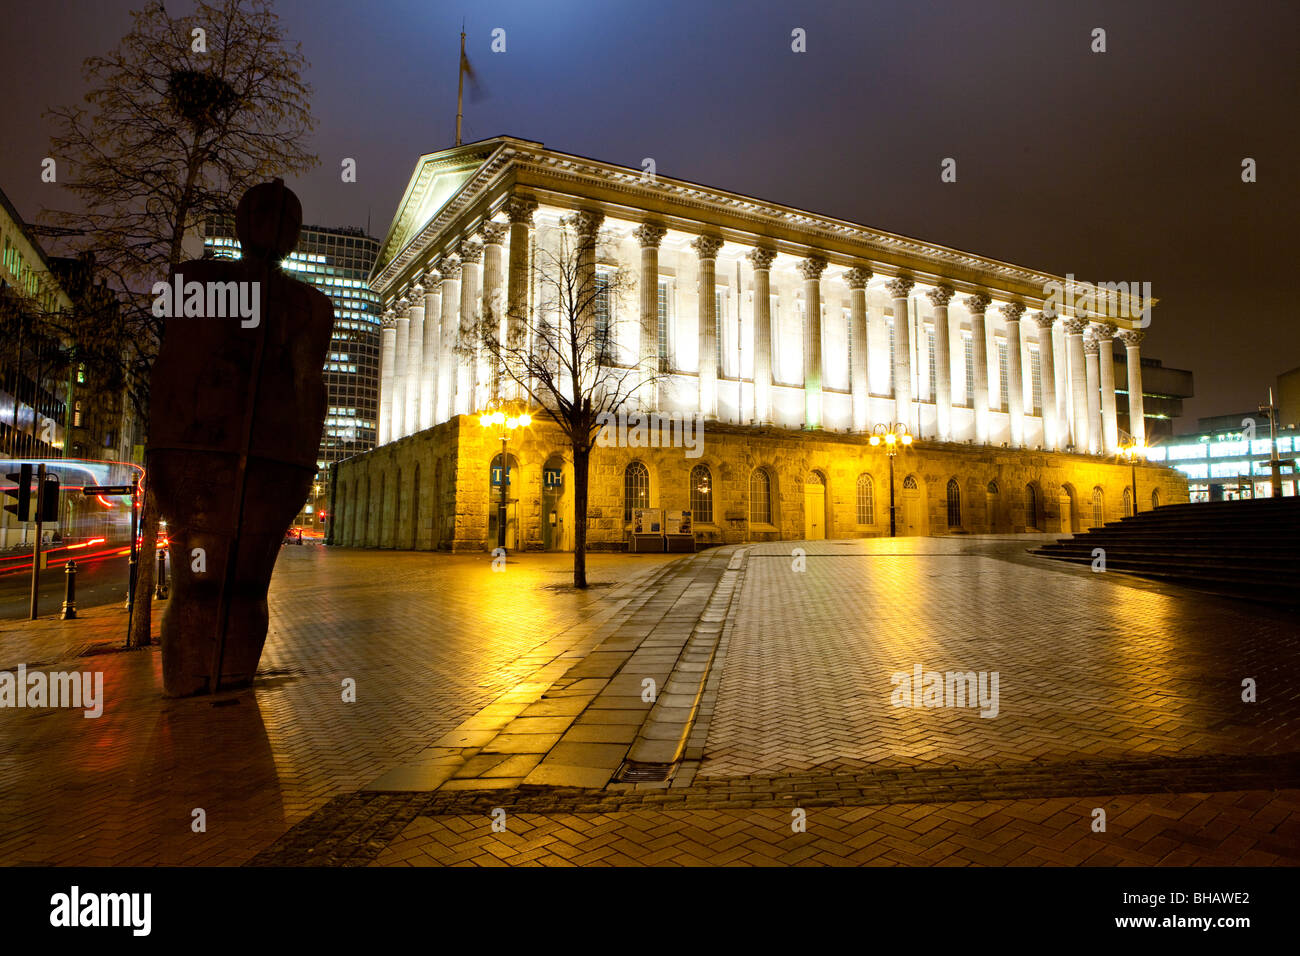 The Town Hall and Iron Man Statue in Birmingham City Centre, Victoria Square, Birmingham - Stock Image